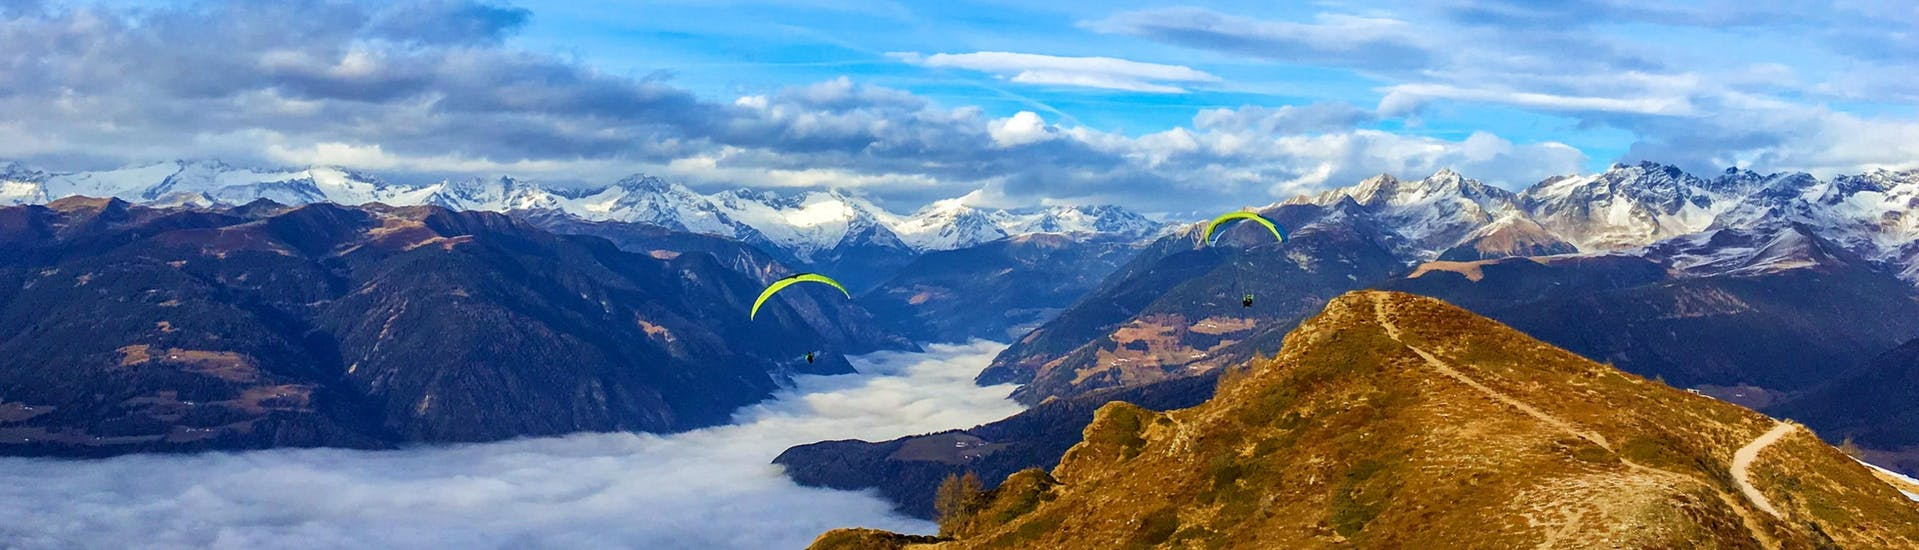 Two paragliders from Tandemflights Kronplatz are gliding over the beautiful mountain scenery around Plan de Corones and the Puster Valley.